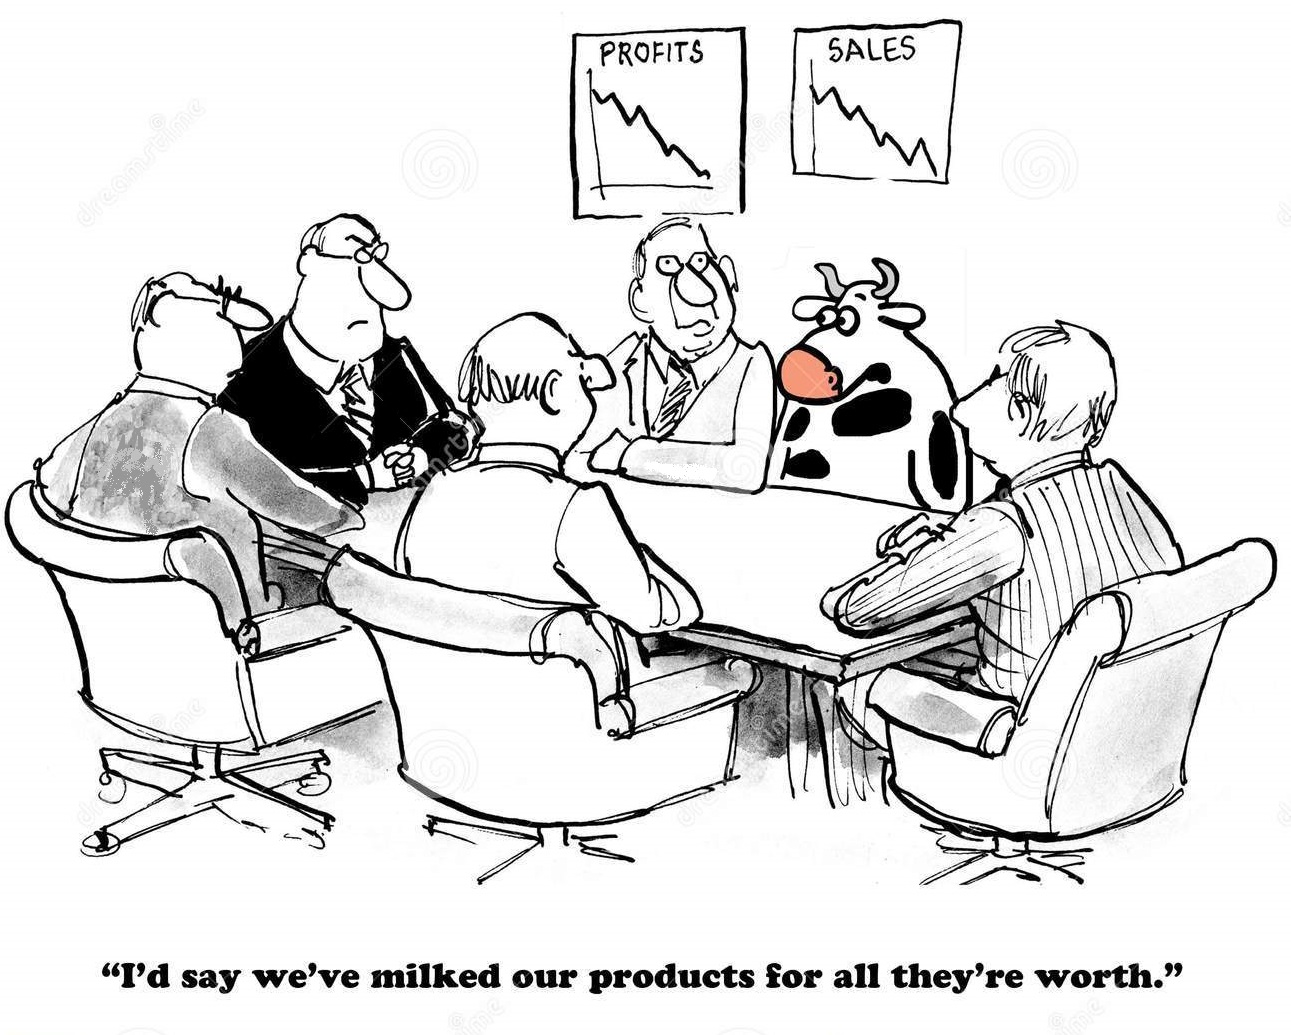 product-life-cycle-business-cartoon-showing-meeting-cow-saying-company-has-milked-all-products-75969218.jpg